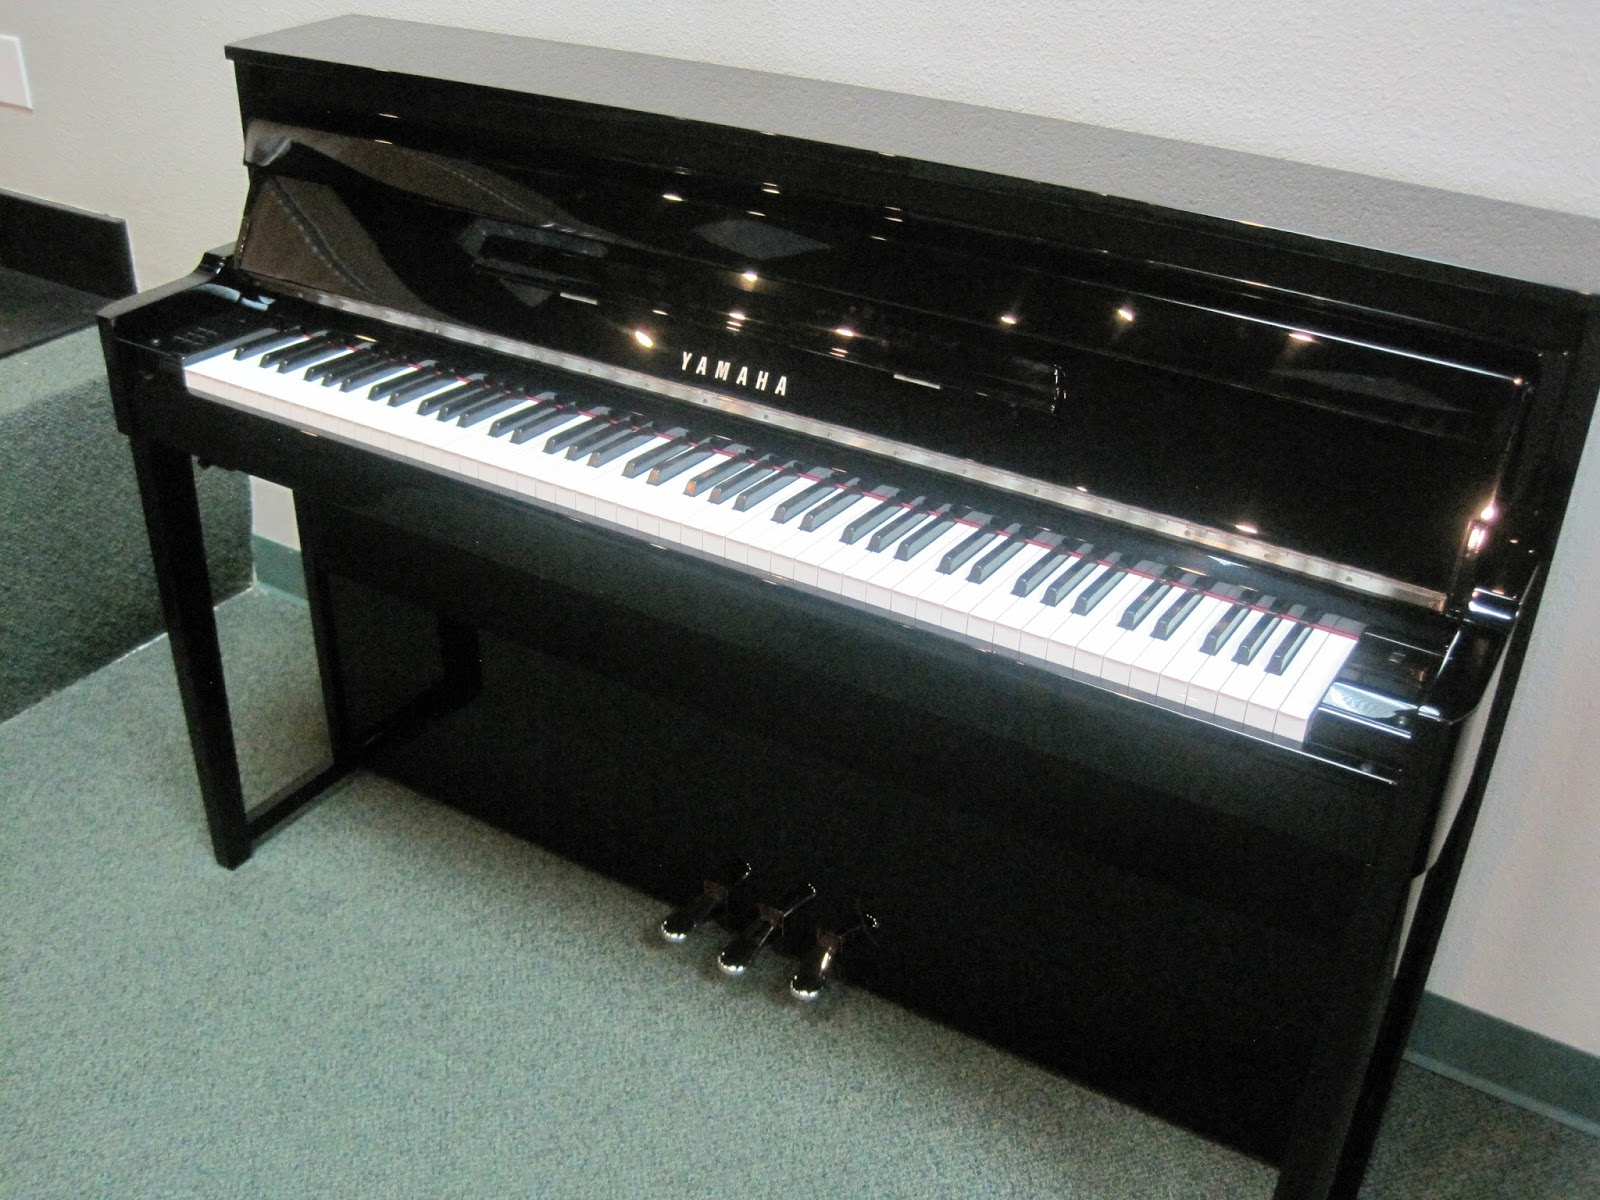 Az piano reviews review yamaha nu1 digital piano for Piano yamaha price list